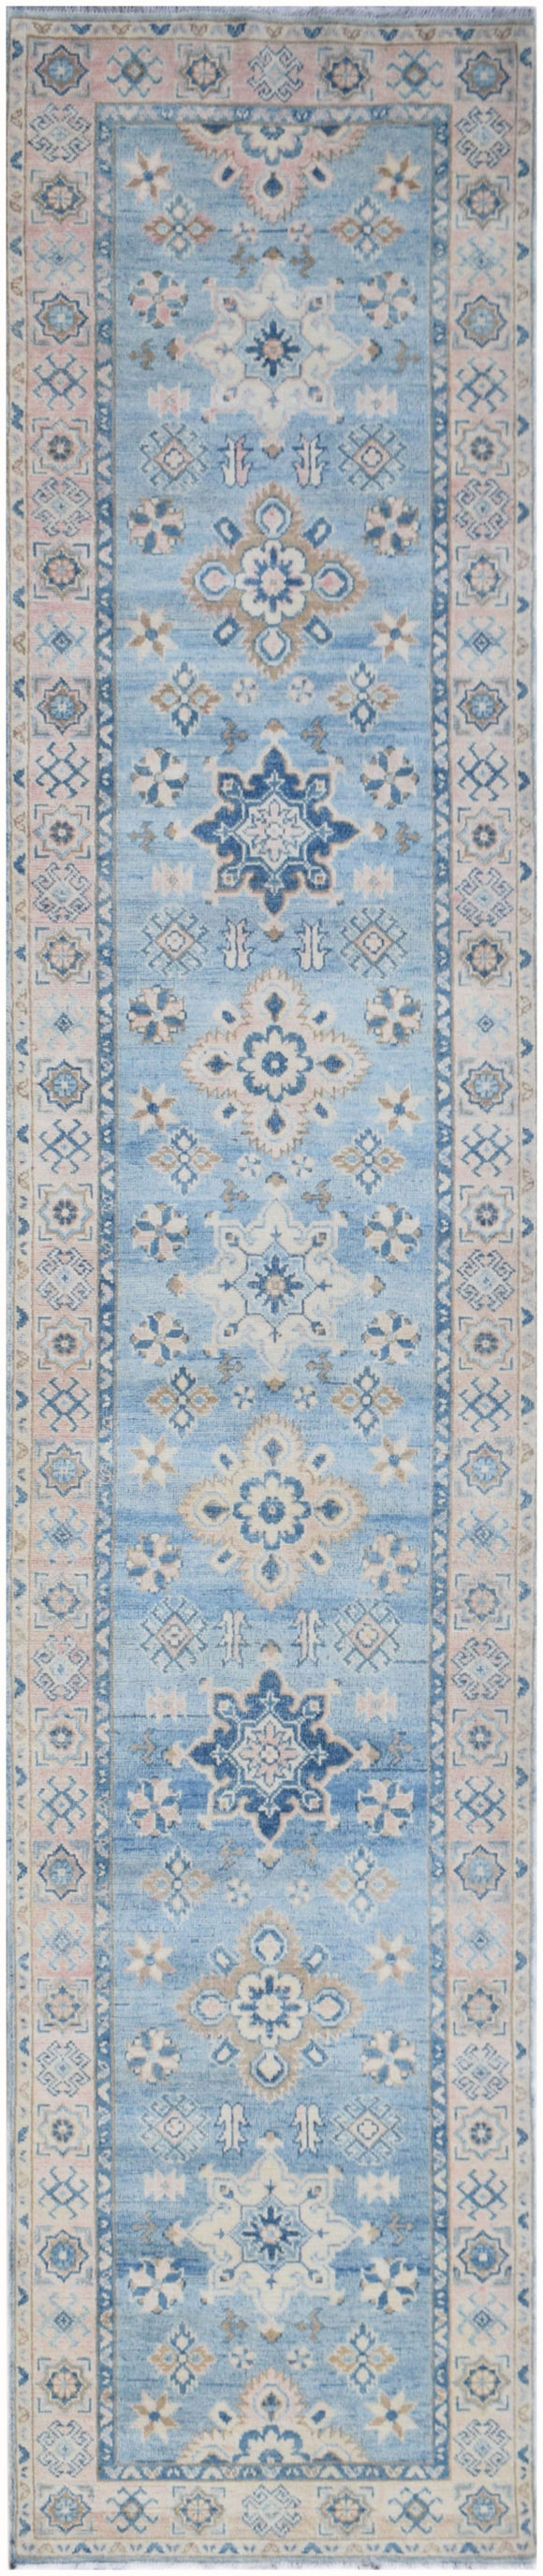 Handmade Sultan Collection Hallway Runner | 381 x 79 cm | 12'6